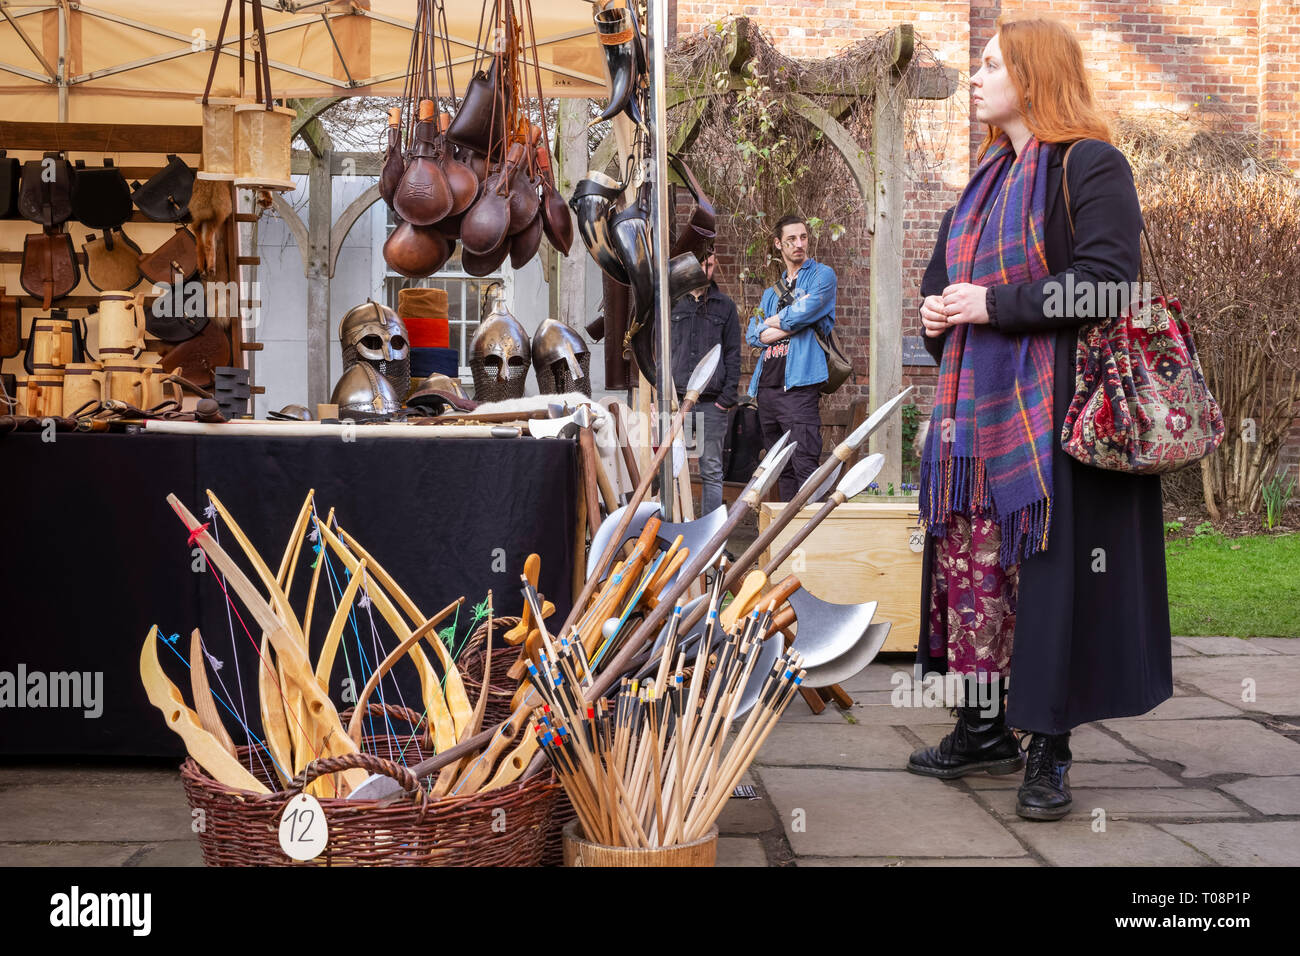 A re-enactment stall open for business during the February 2019 York Viking weekend, City of York, UK - Stock Image